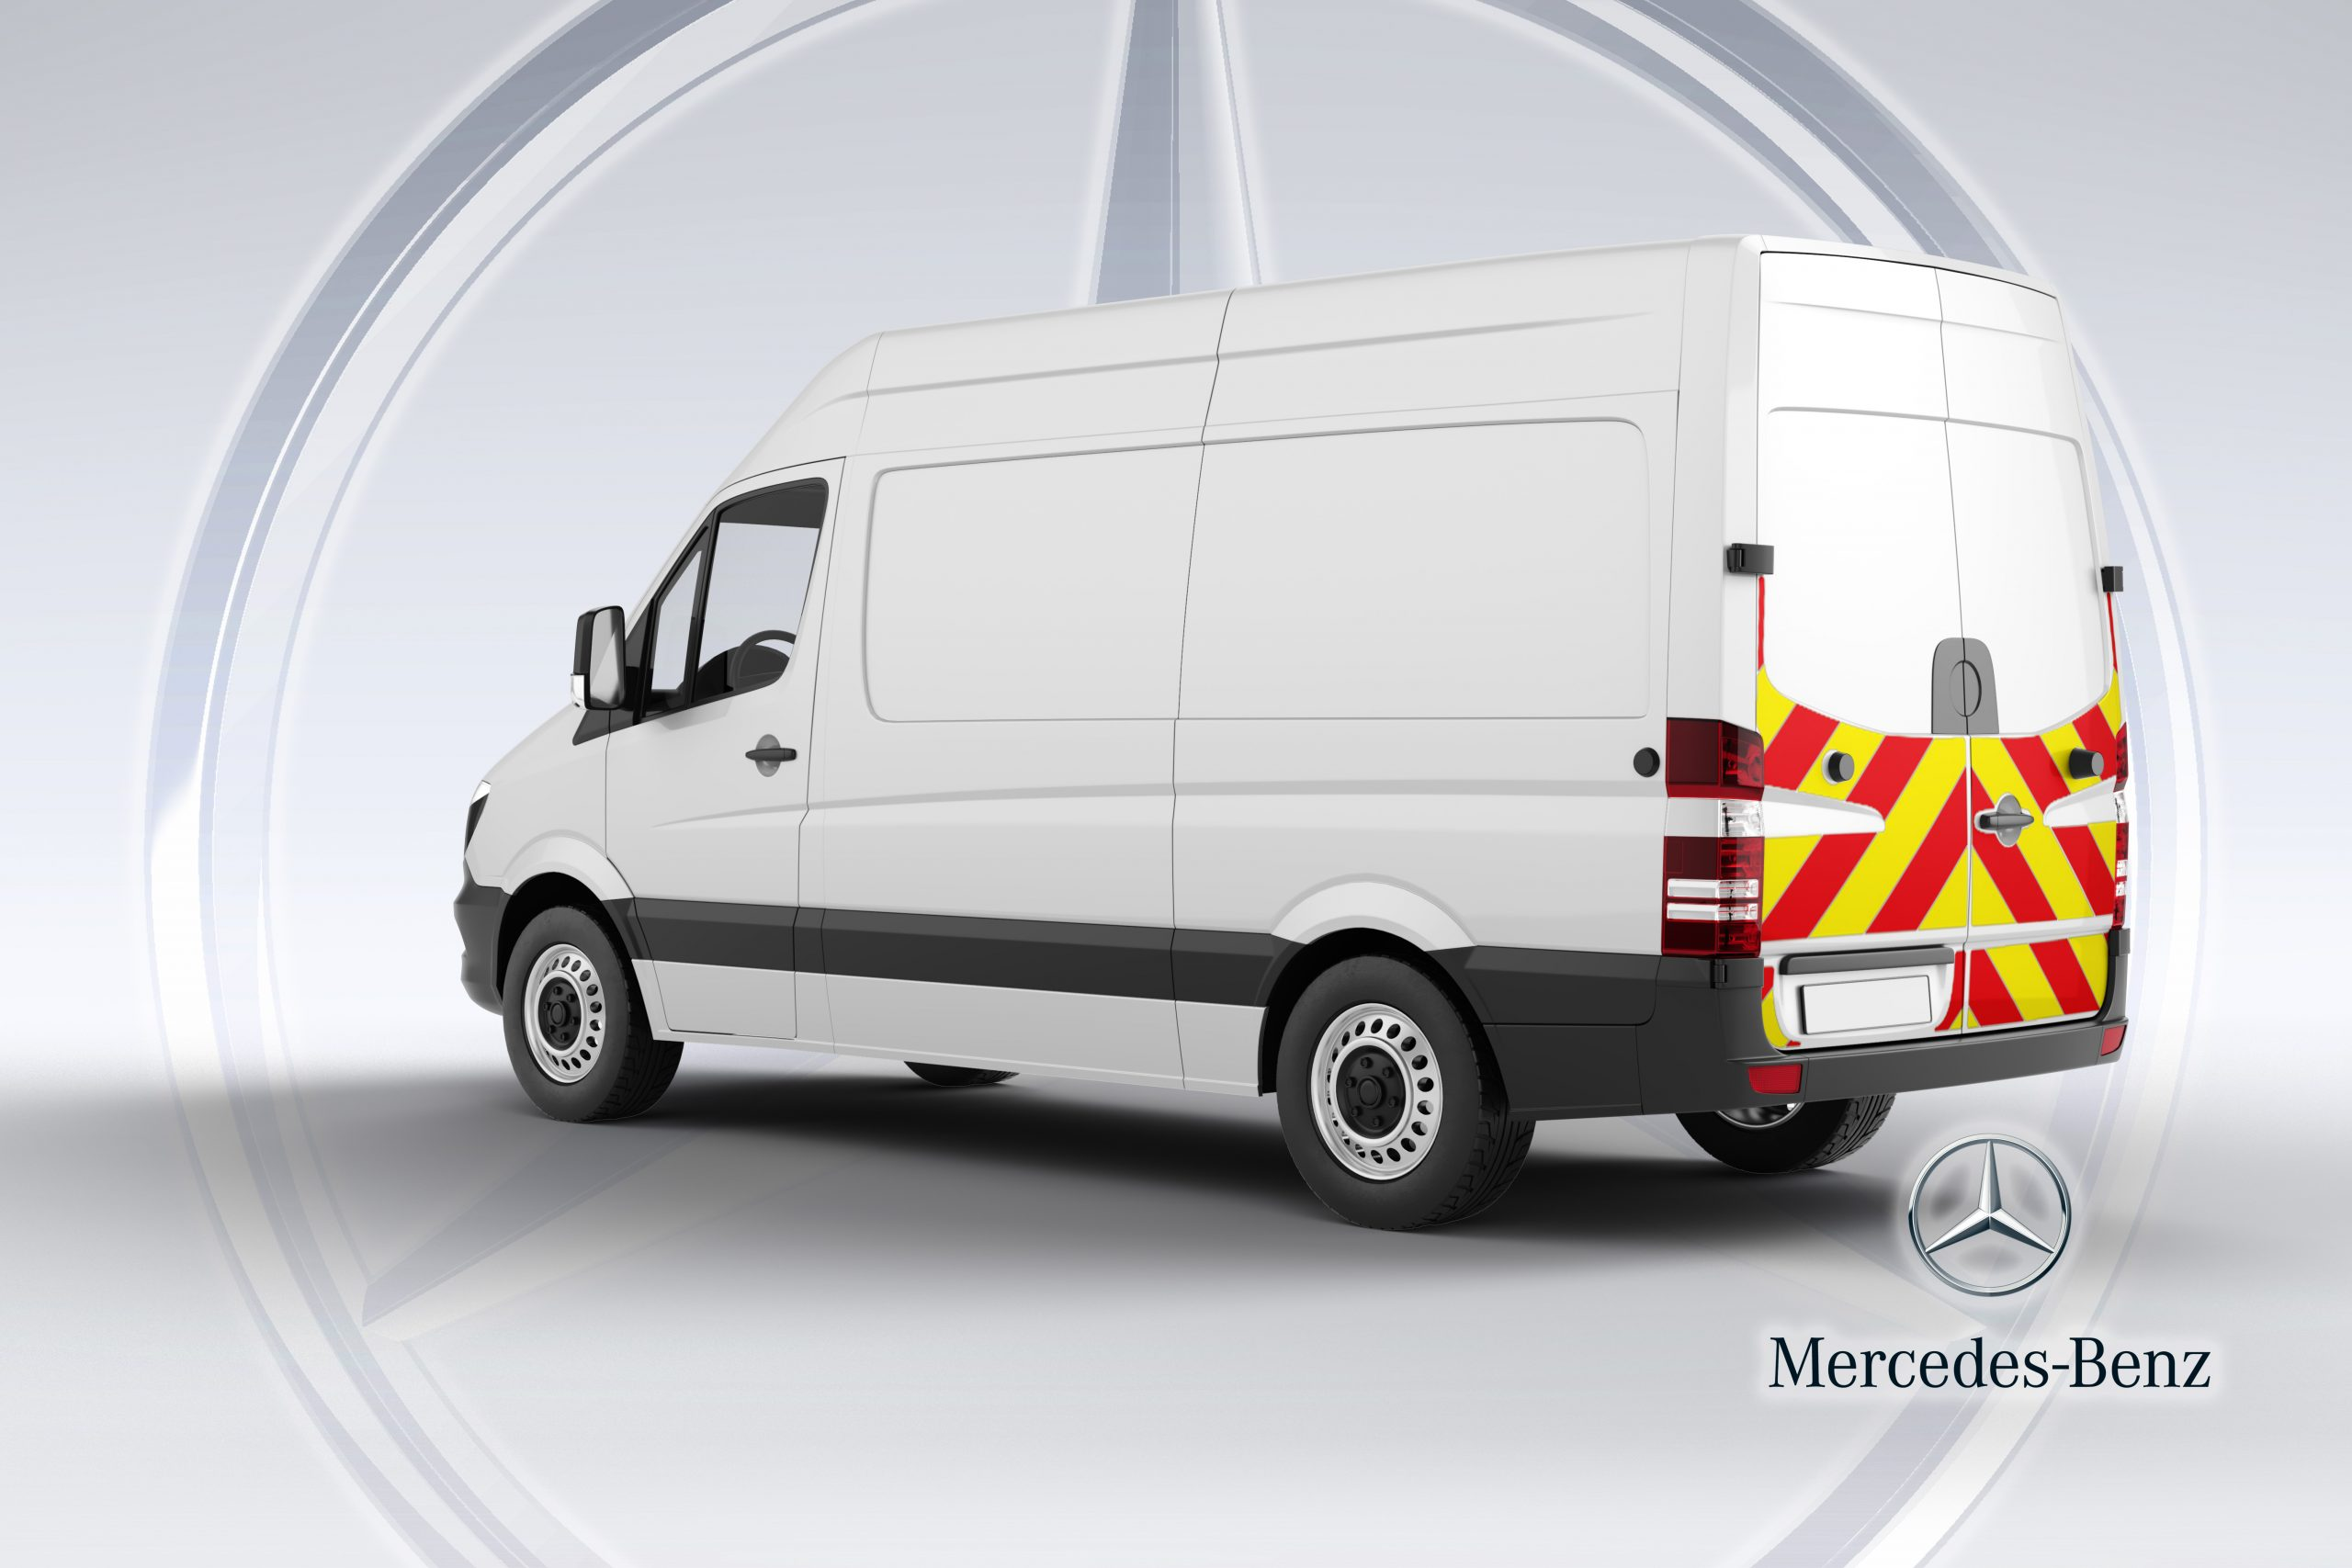 Pic showing the angled back of a Mercedes Sprinter van with IM illuminated chevrons fitted